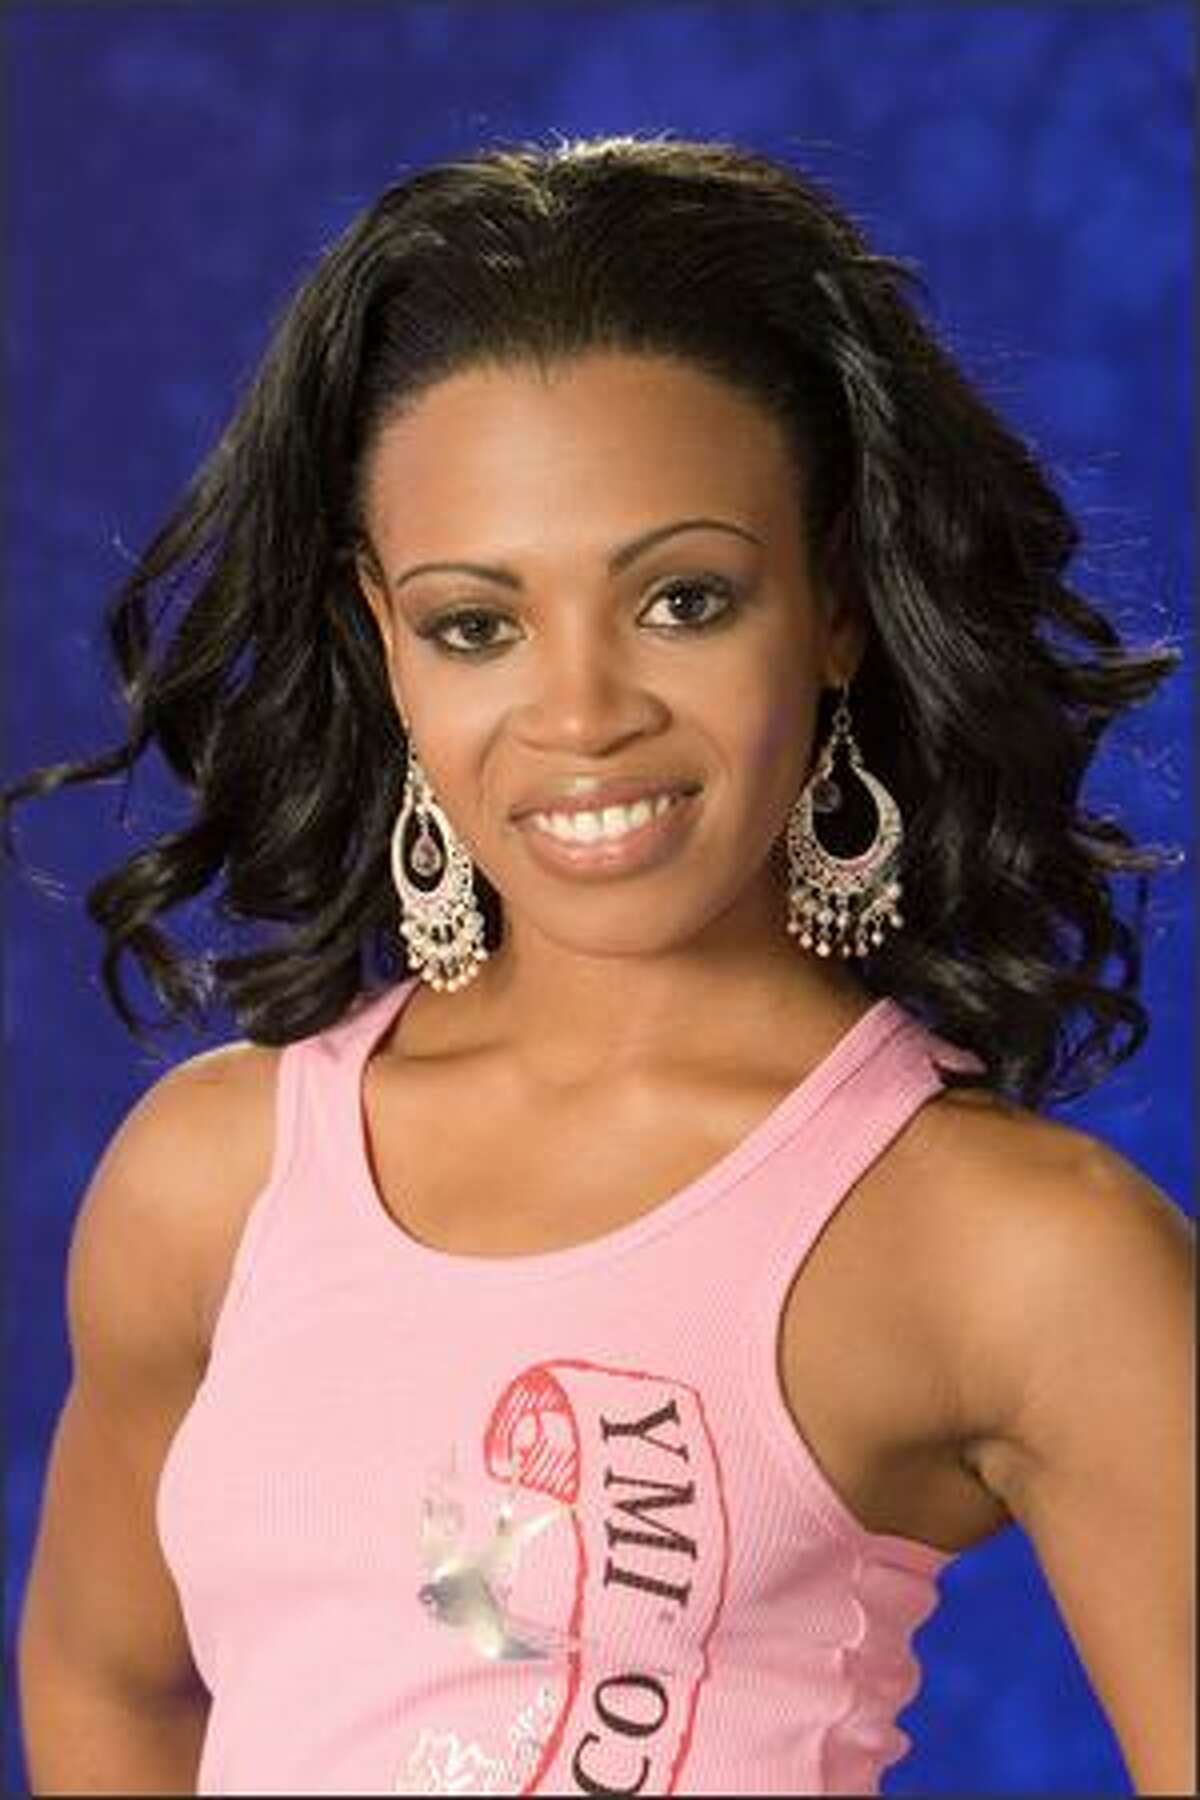 Trinere Lynes, Miss Bahamas 2007, poses in her YMI Jeanswear at the Camino Real Mexico in Mexico City on May 4. She will compete for the title of Miss Universe 2007 during the NBC broadcast of the 56th annual Miss Universe competition from Mexico City on May 28.